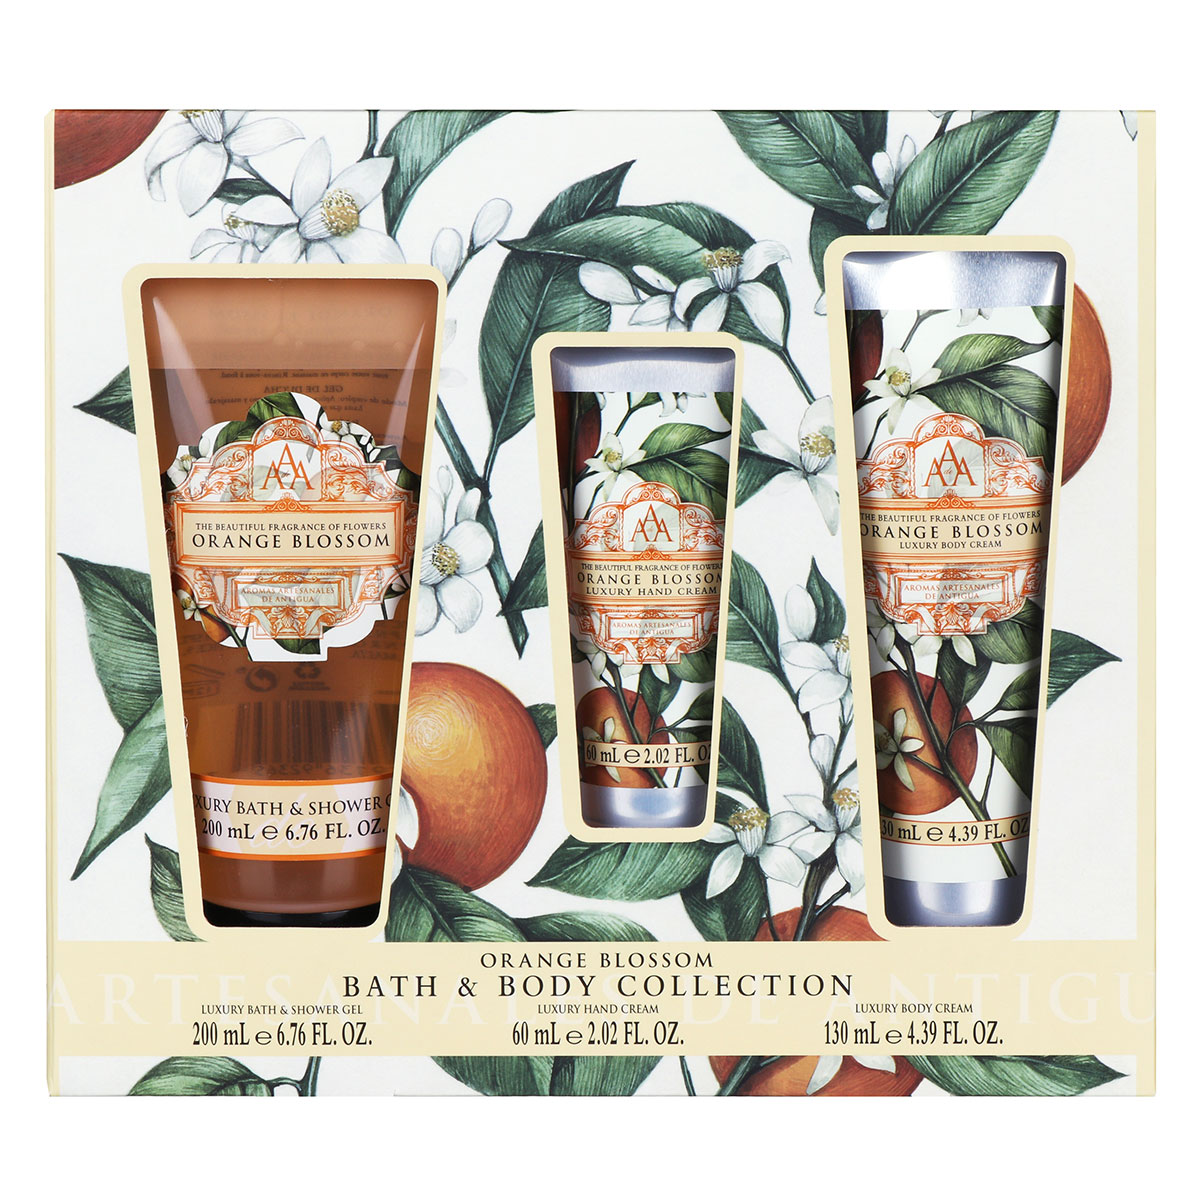 The Somerset Toiletry Co AAA Orange Blossom Bath & Body Collection